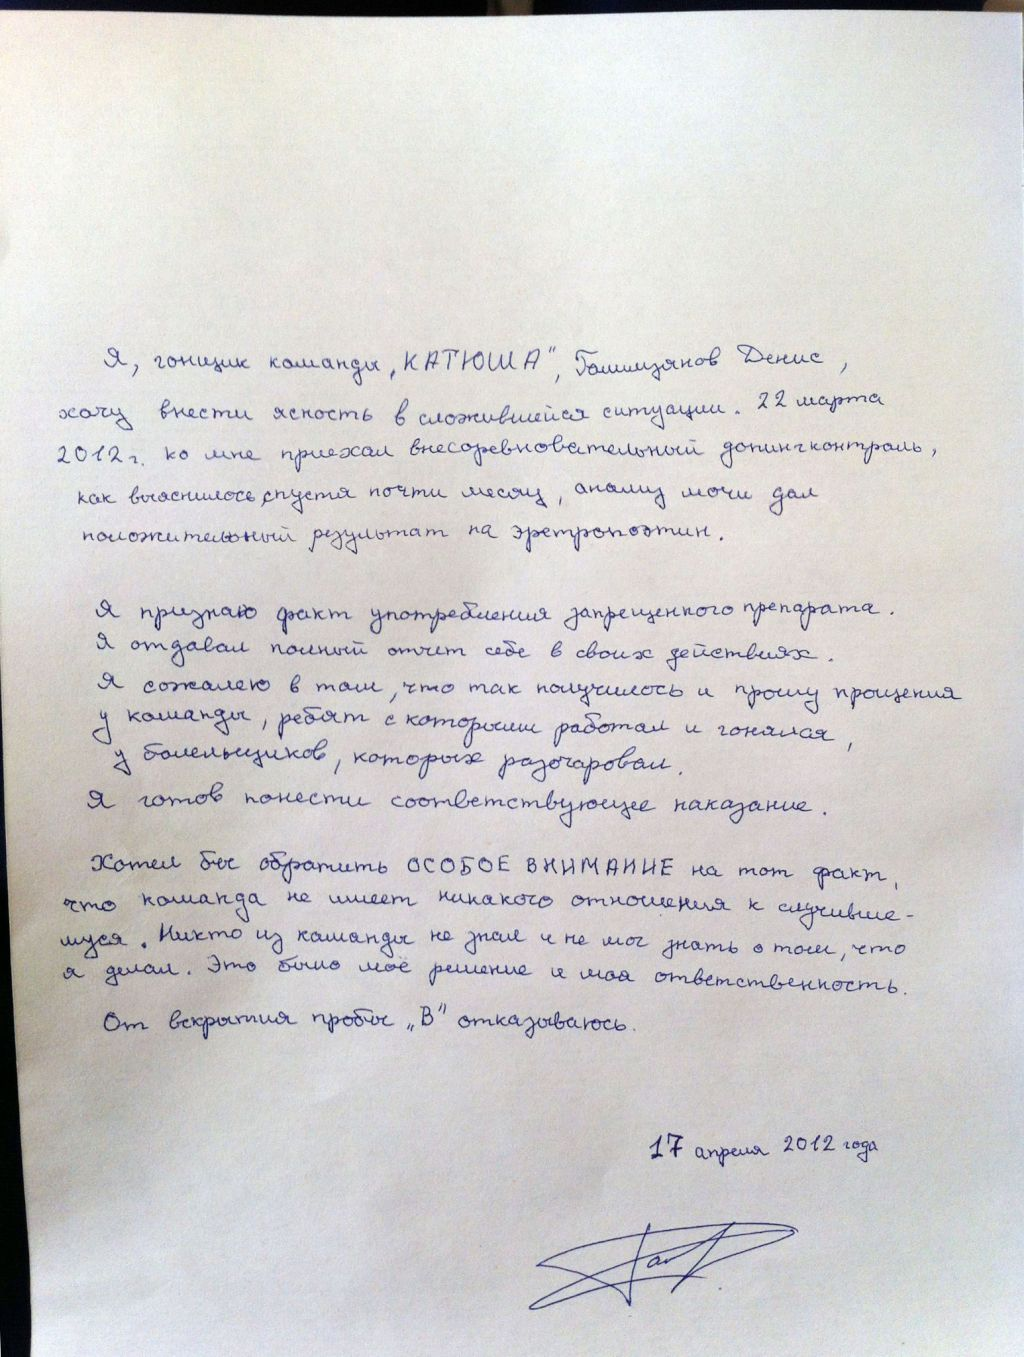 The galimzyanov letter and questions for katusha altavistaventures